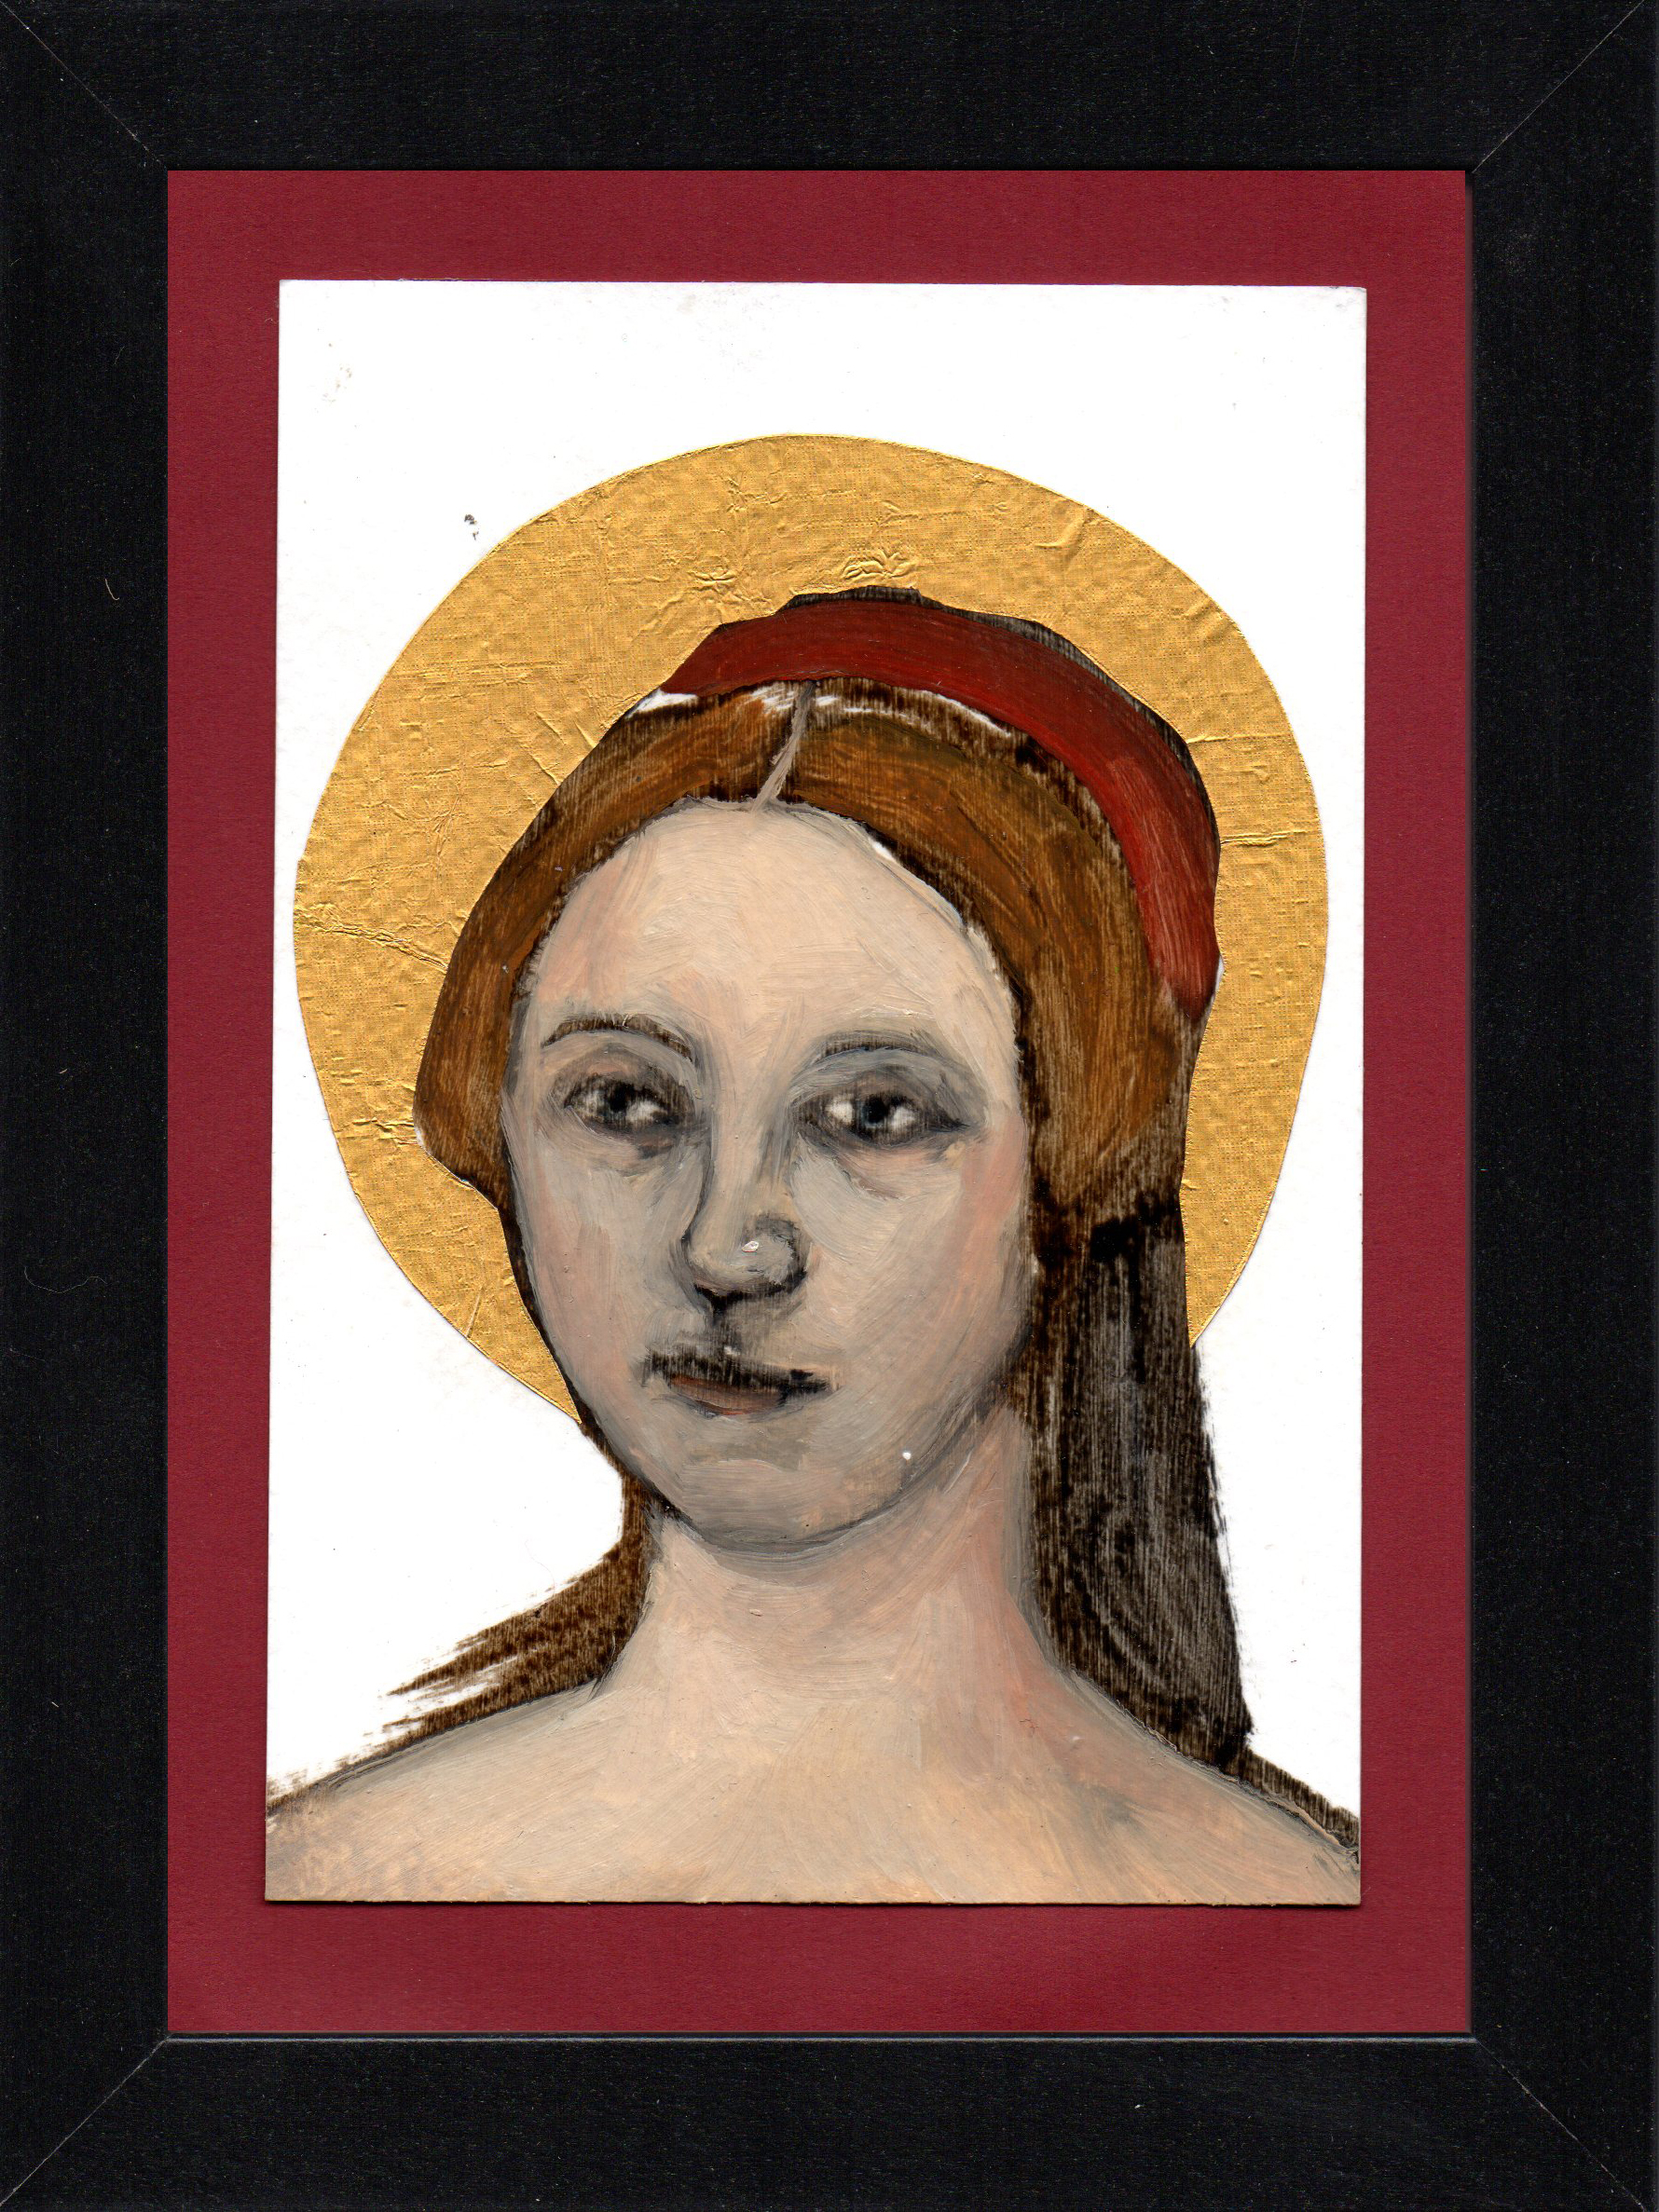 "Postcard Saint 5, oil & gold foil on paper 10.5 x 15 cm (4"" x 6""), 2016"